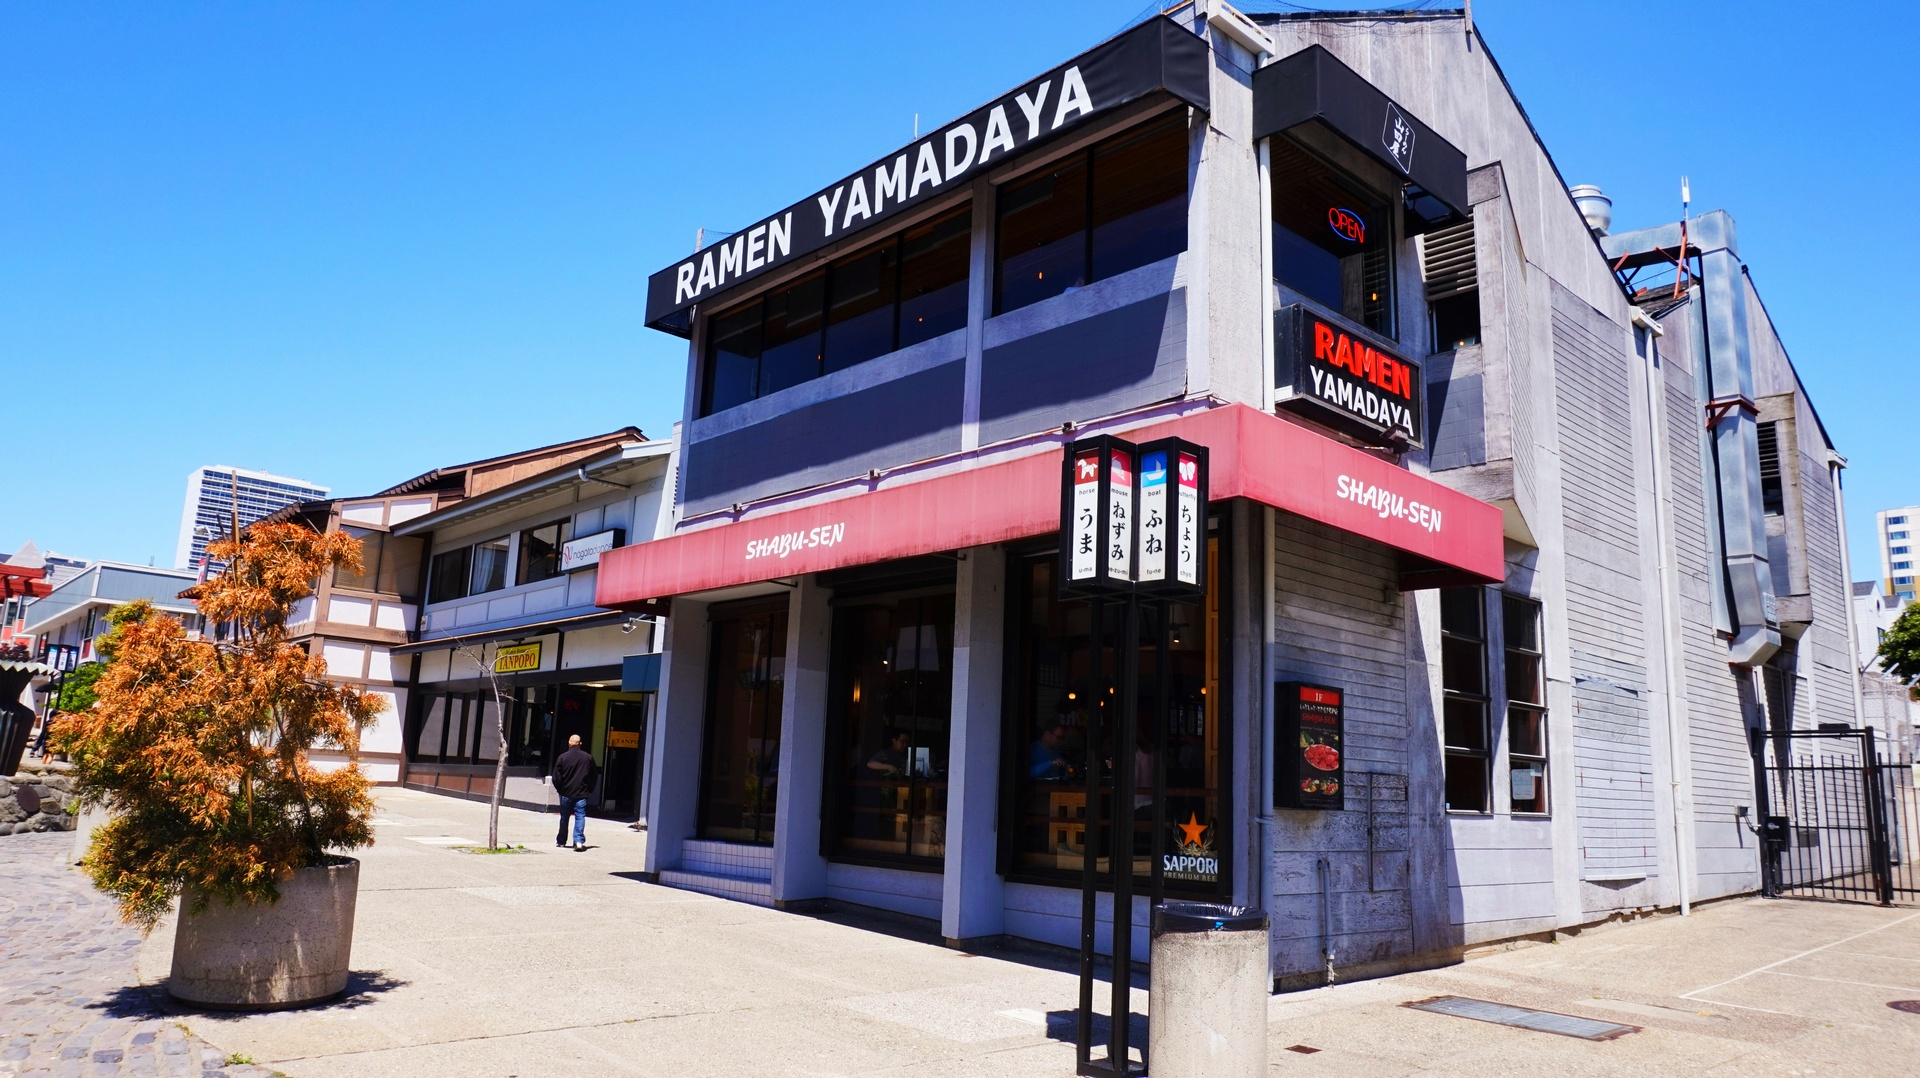 Restauracja Ramn Yamadaya w Japantown, San Francisco, USA | Sway the way